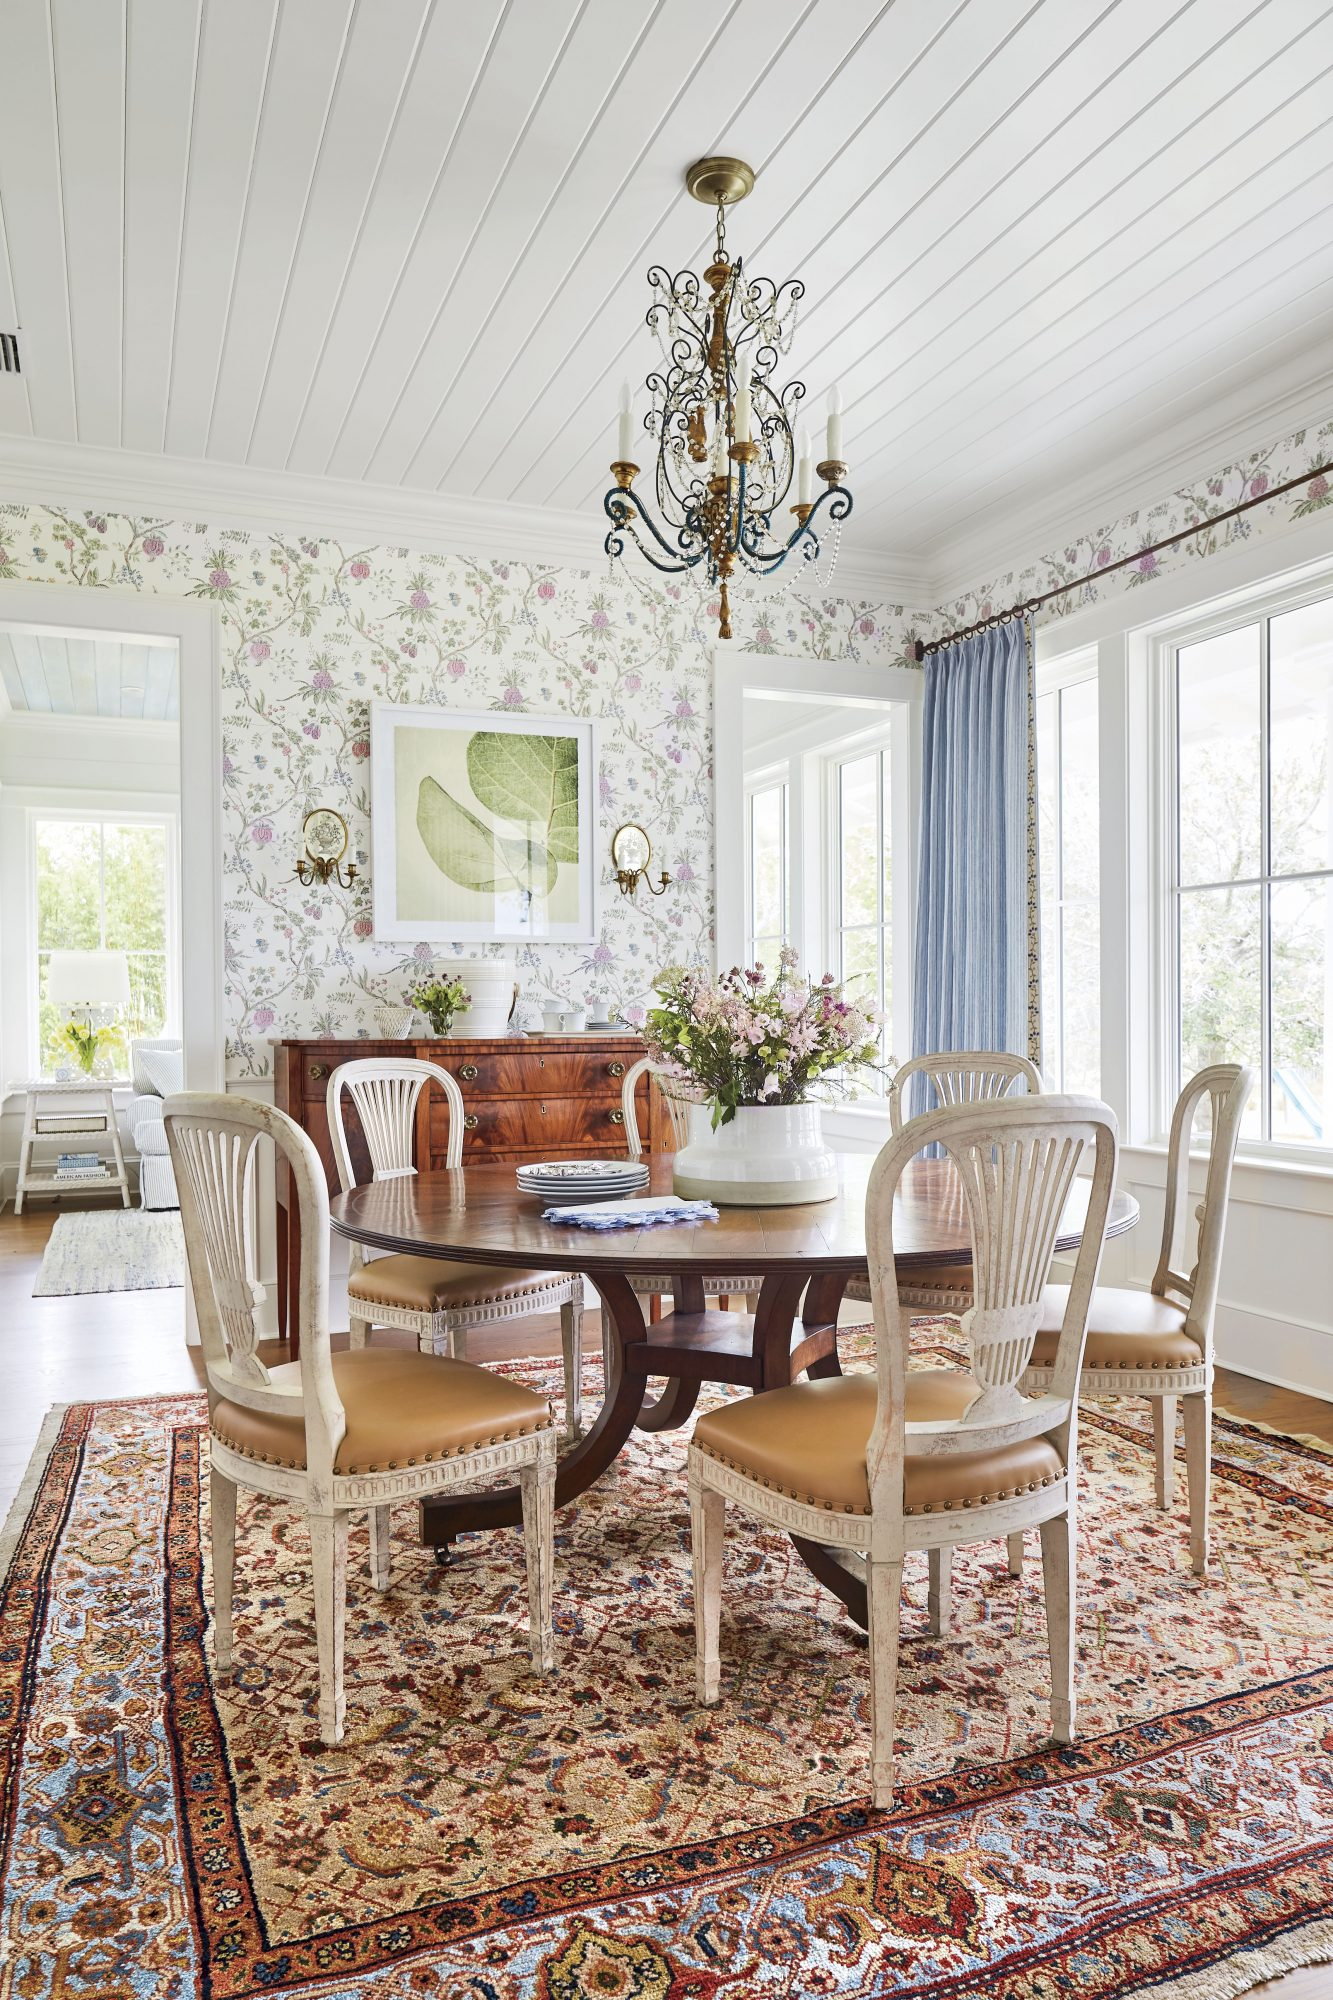 Florida Cracker Style Home Dining Room